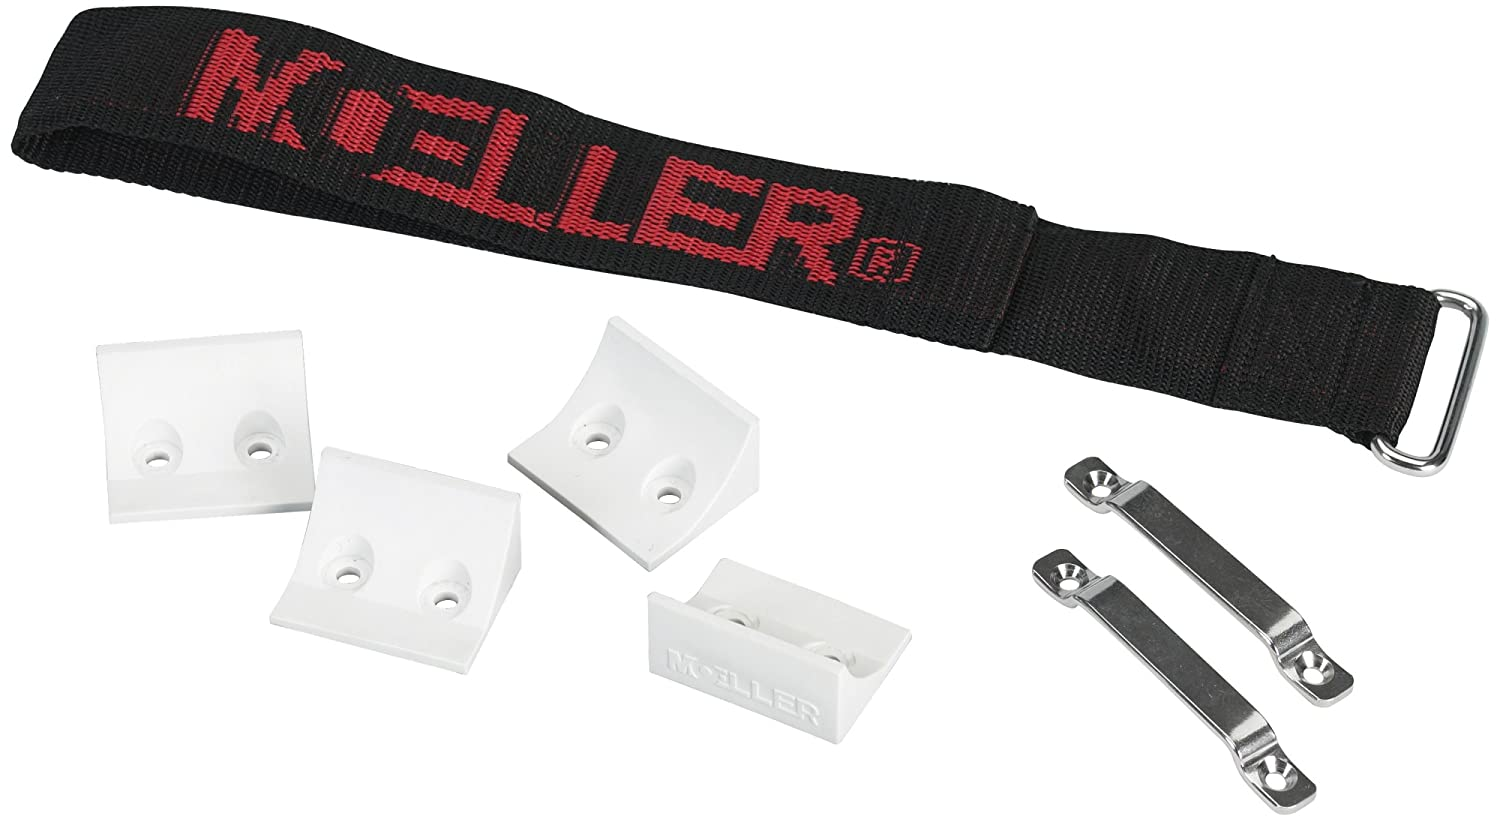 Moeller Ice-Station Zero Marine Ice Chest Hold Down Kit (125, 170 and 270-Quart Ice Chests) by Moeller Marine